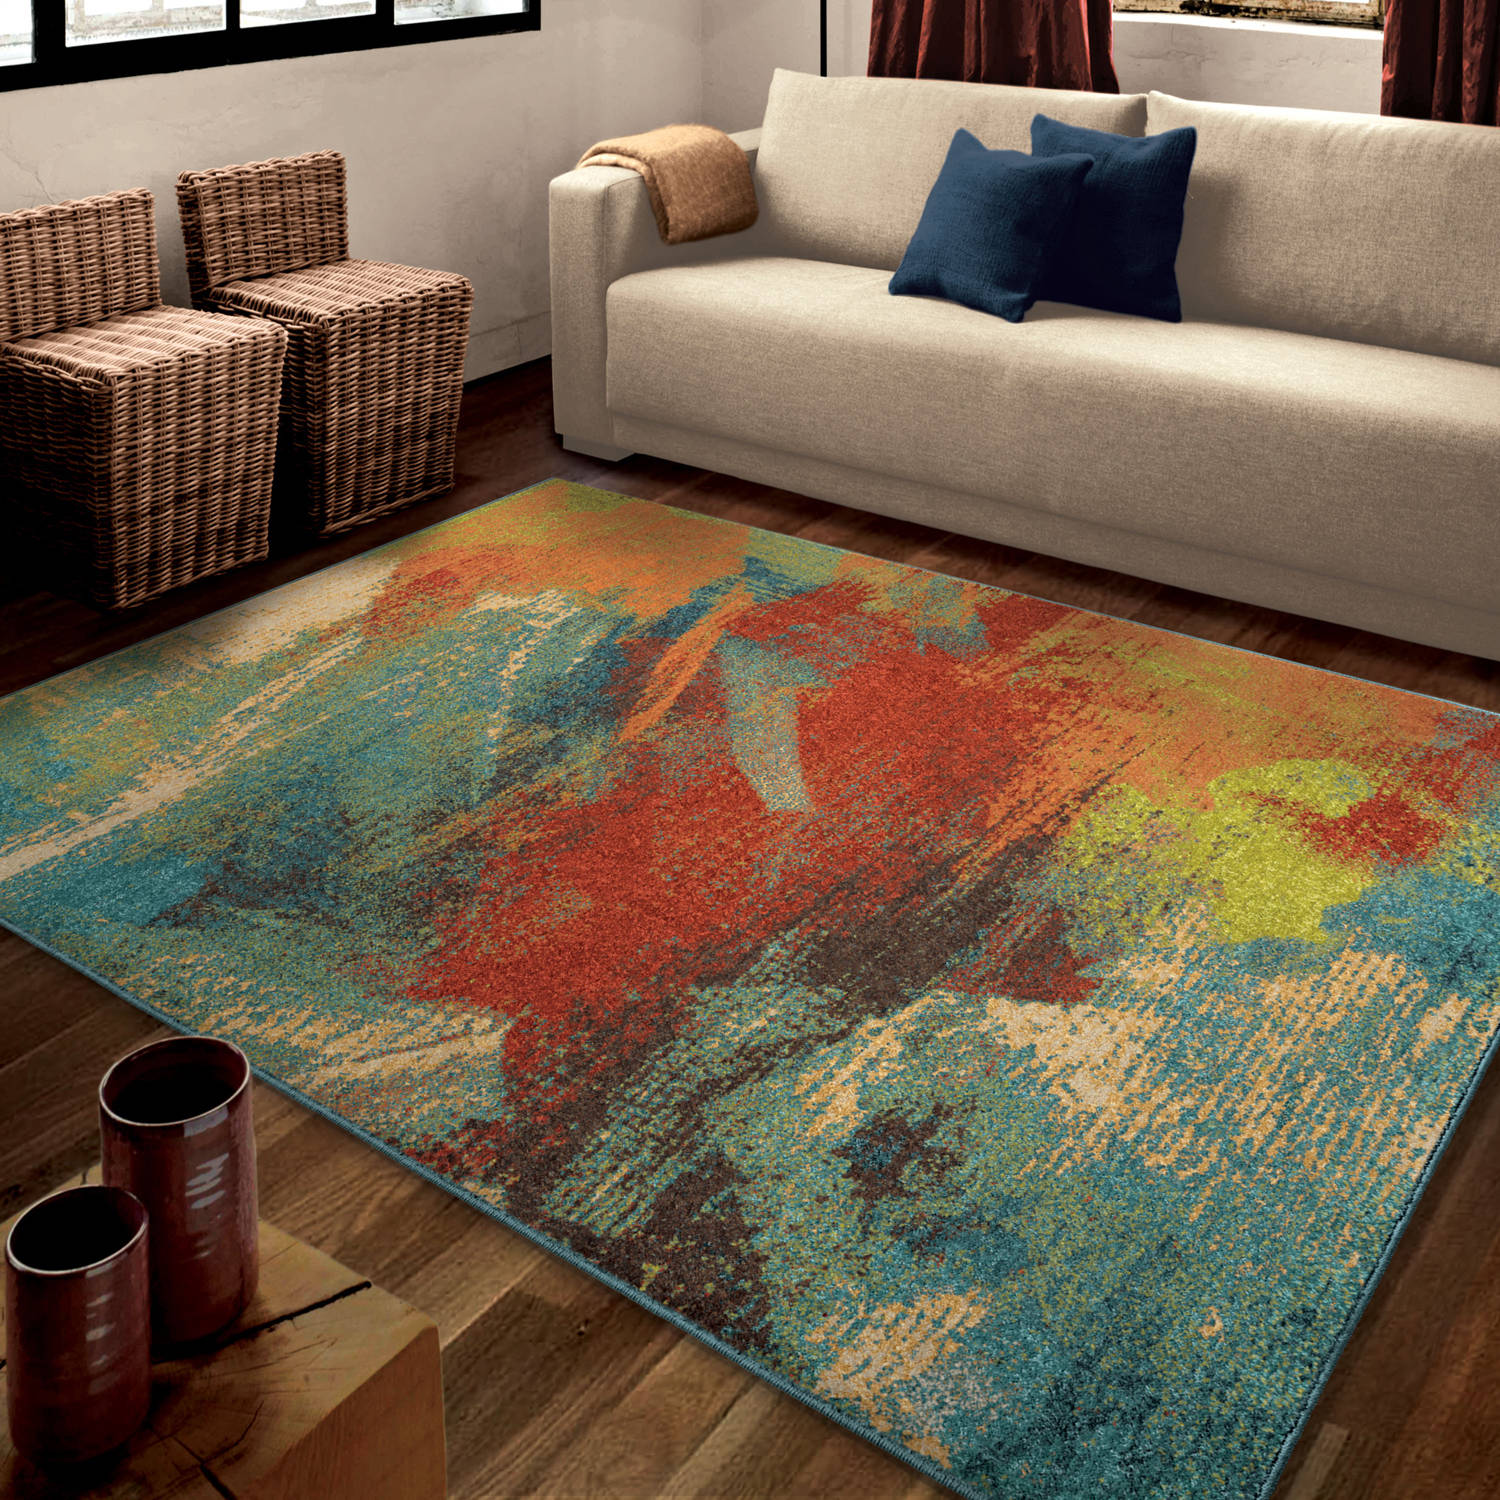 Contemporary affordable rugs affordable rugs art ULENLKE